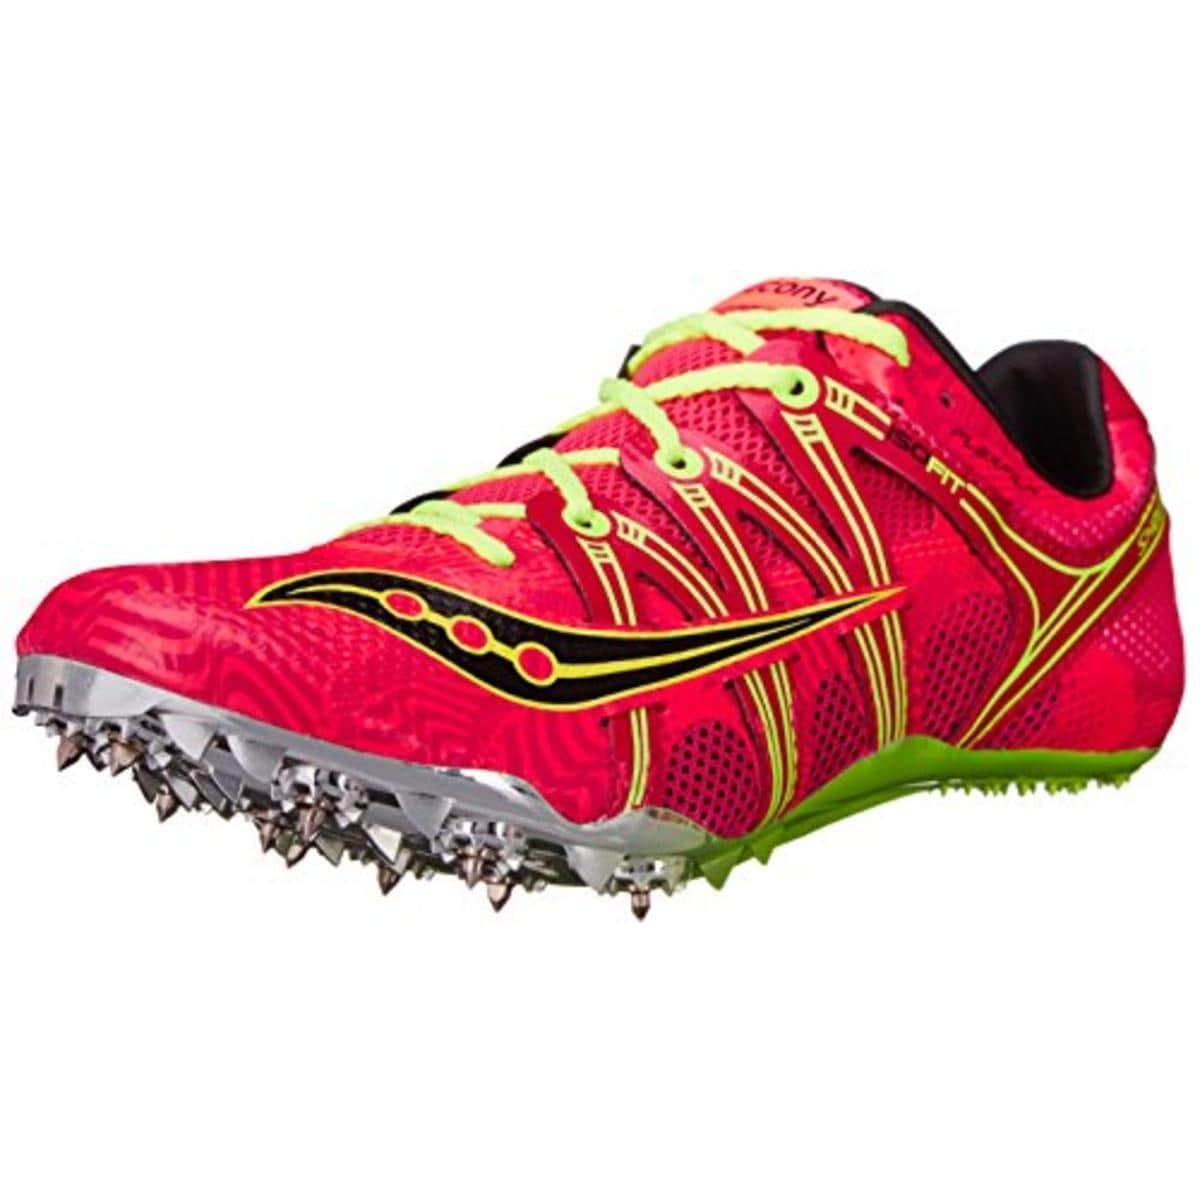 65c383f0f8 Saucony Womens Showdown Running Shoes Track Spikes